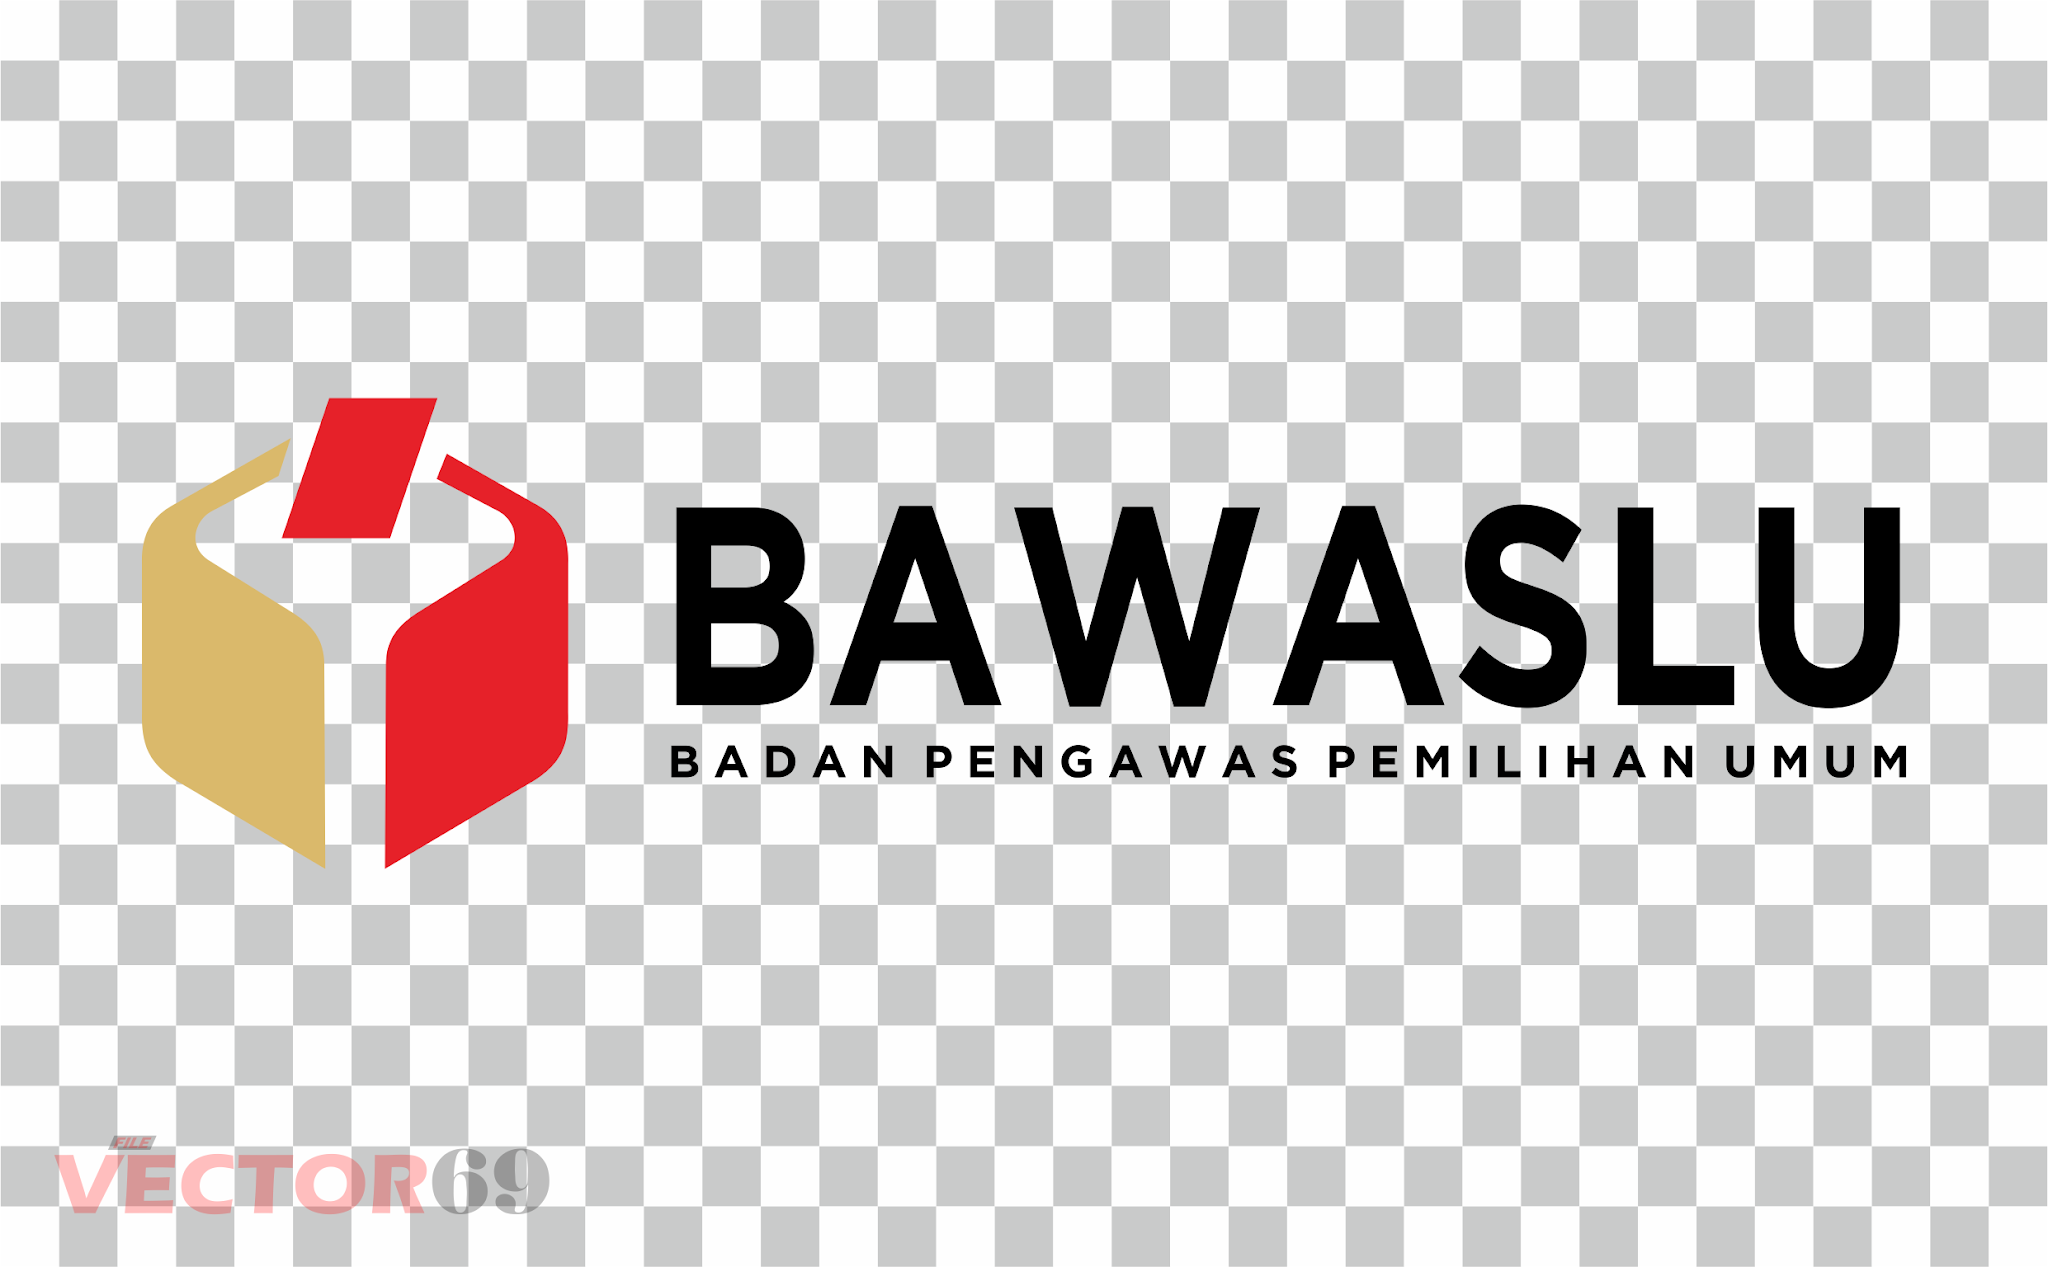 BAWASLU (Badan Pengawas Pemilihan Umum) Logo - Download Vector File PNG (Portable Network Graphics)